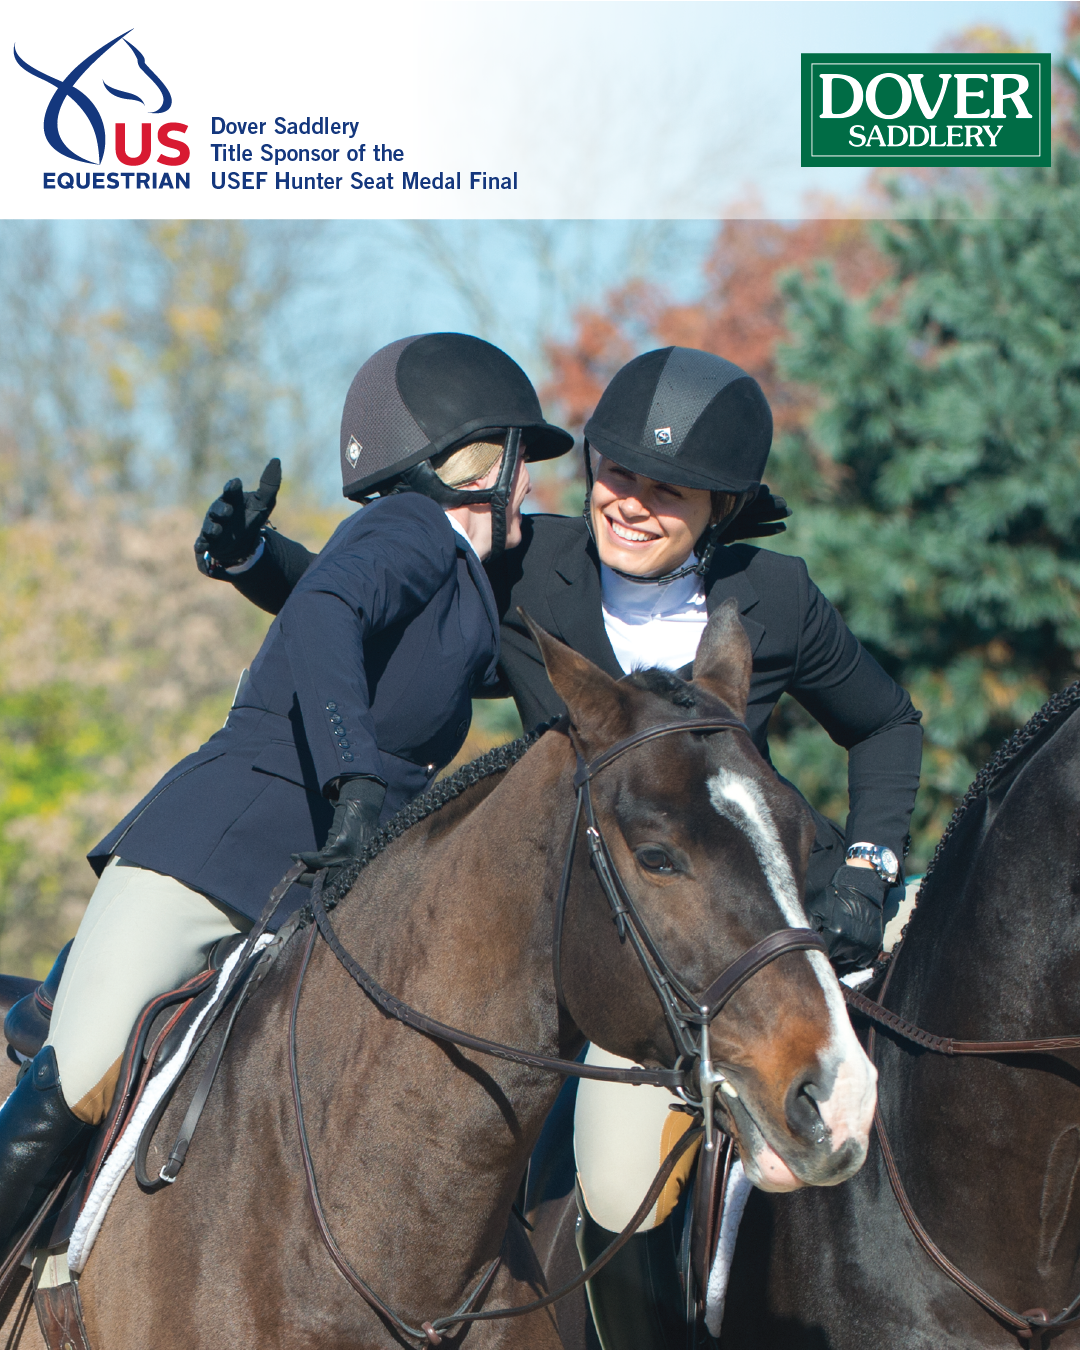 US Equestrian Announces Partnership with Dover Saddlery | US